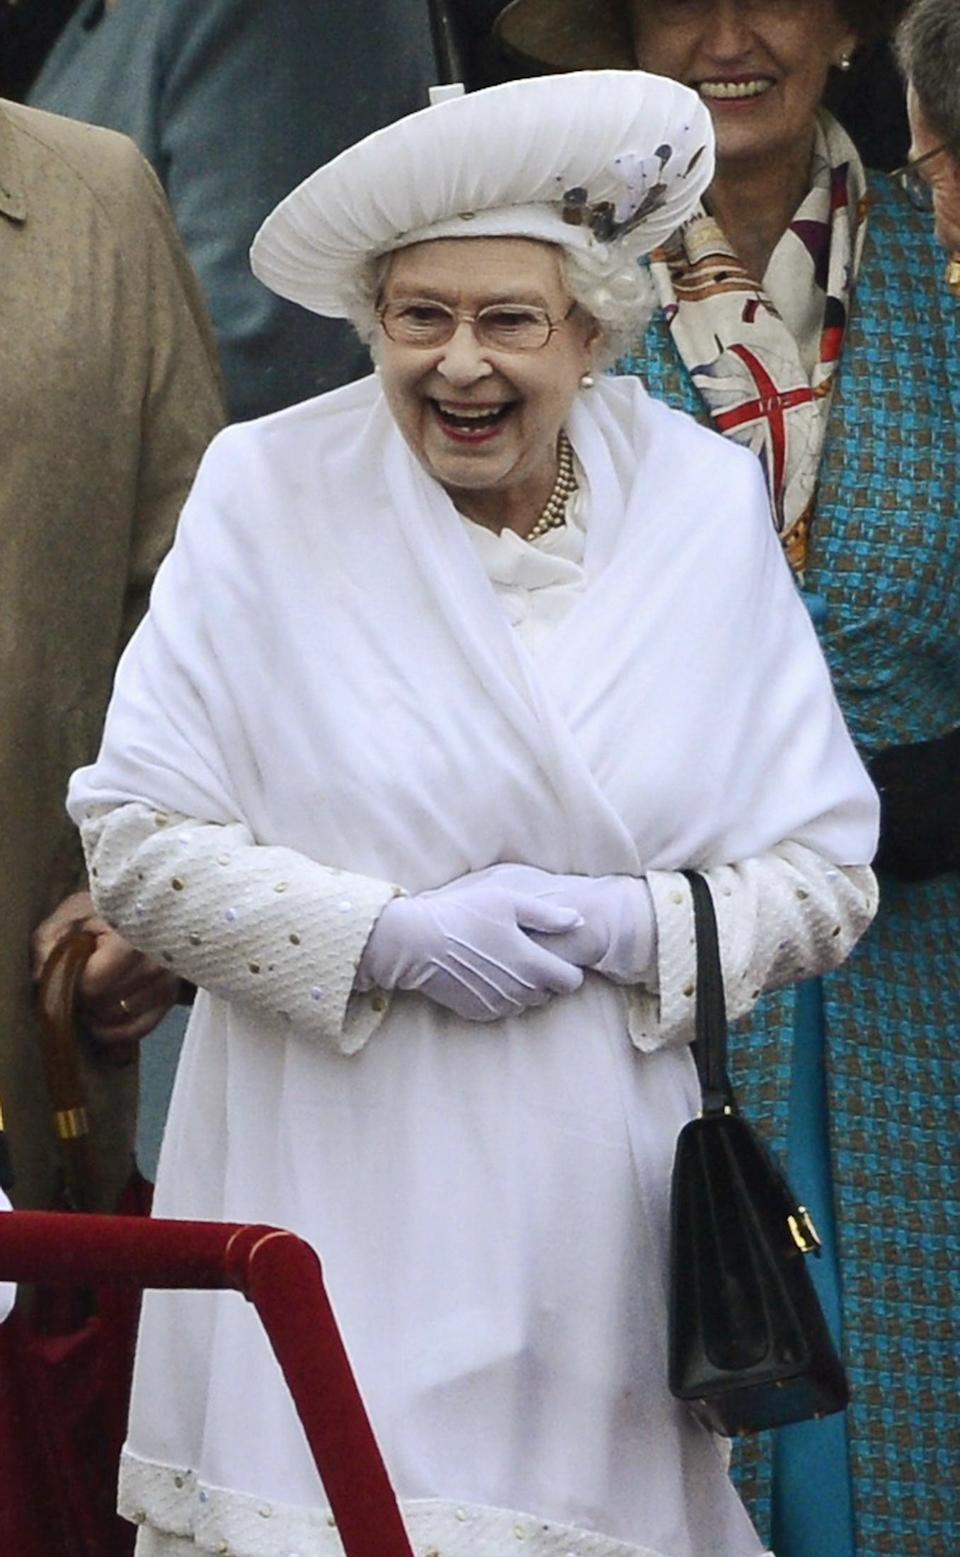 Britain's Queen Elizabeth II smiles during the river pageant commemorating her Diamond Jubilee, on the River Thames in London,  Sunday June 3, 2012. (AP Photo / Dylan Martinez, pool)